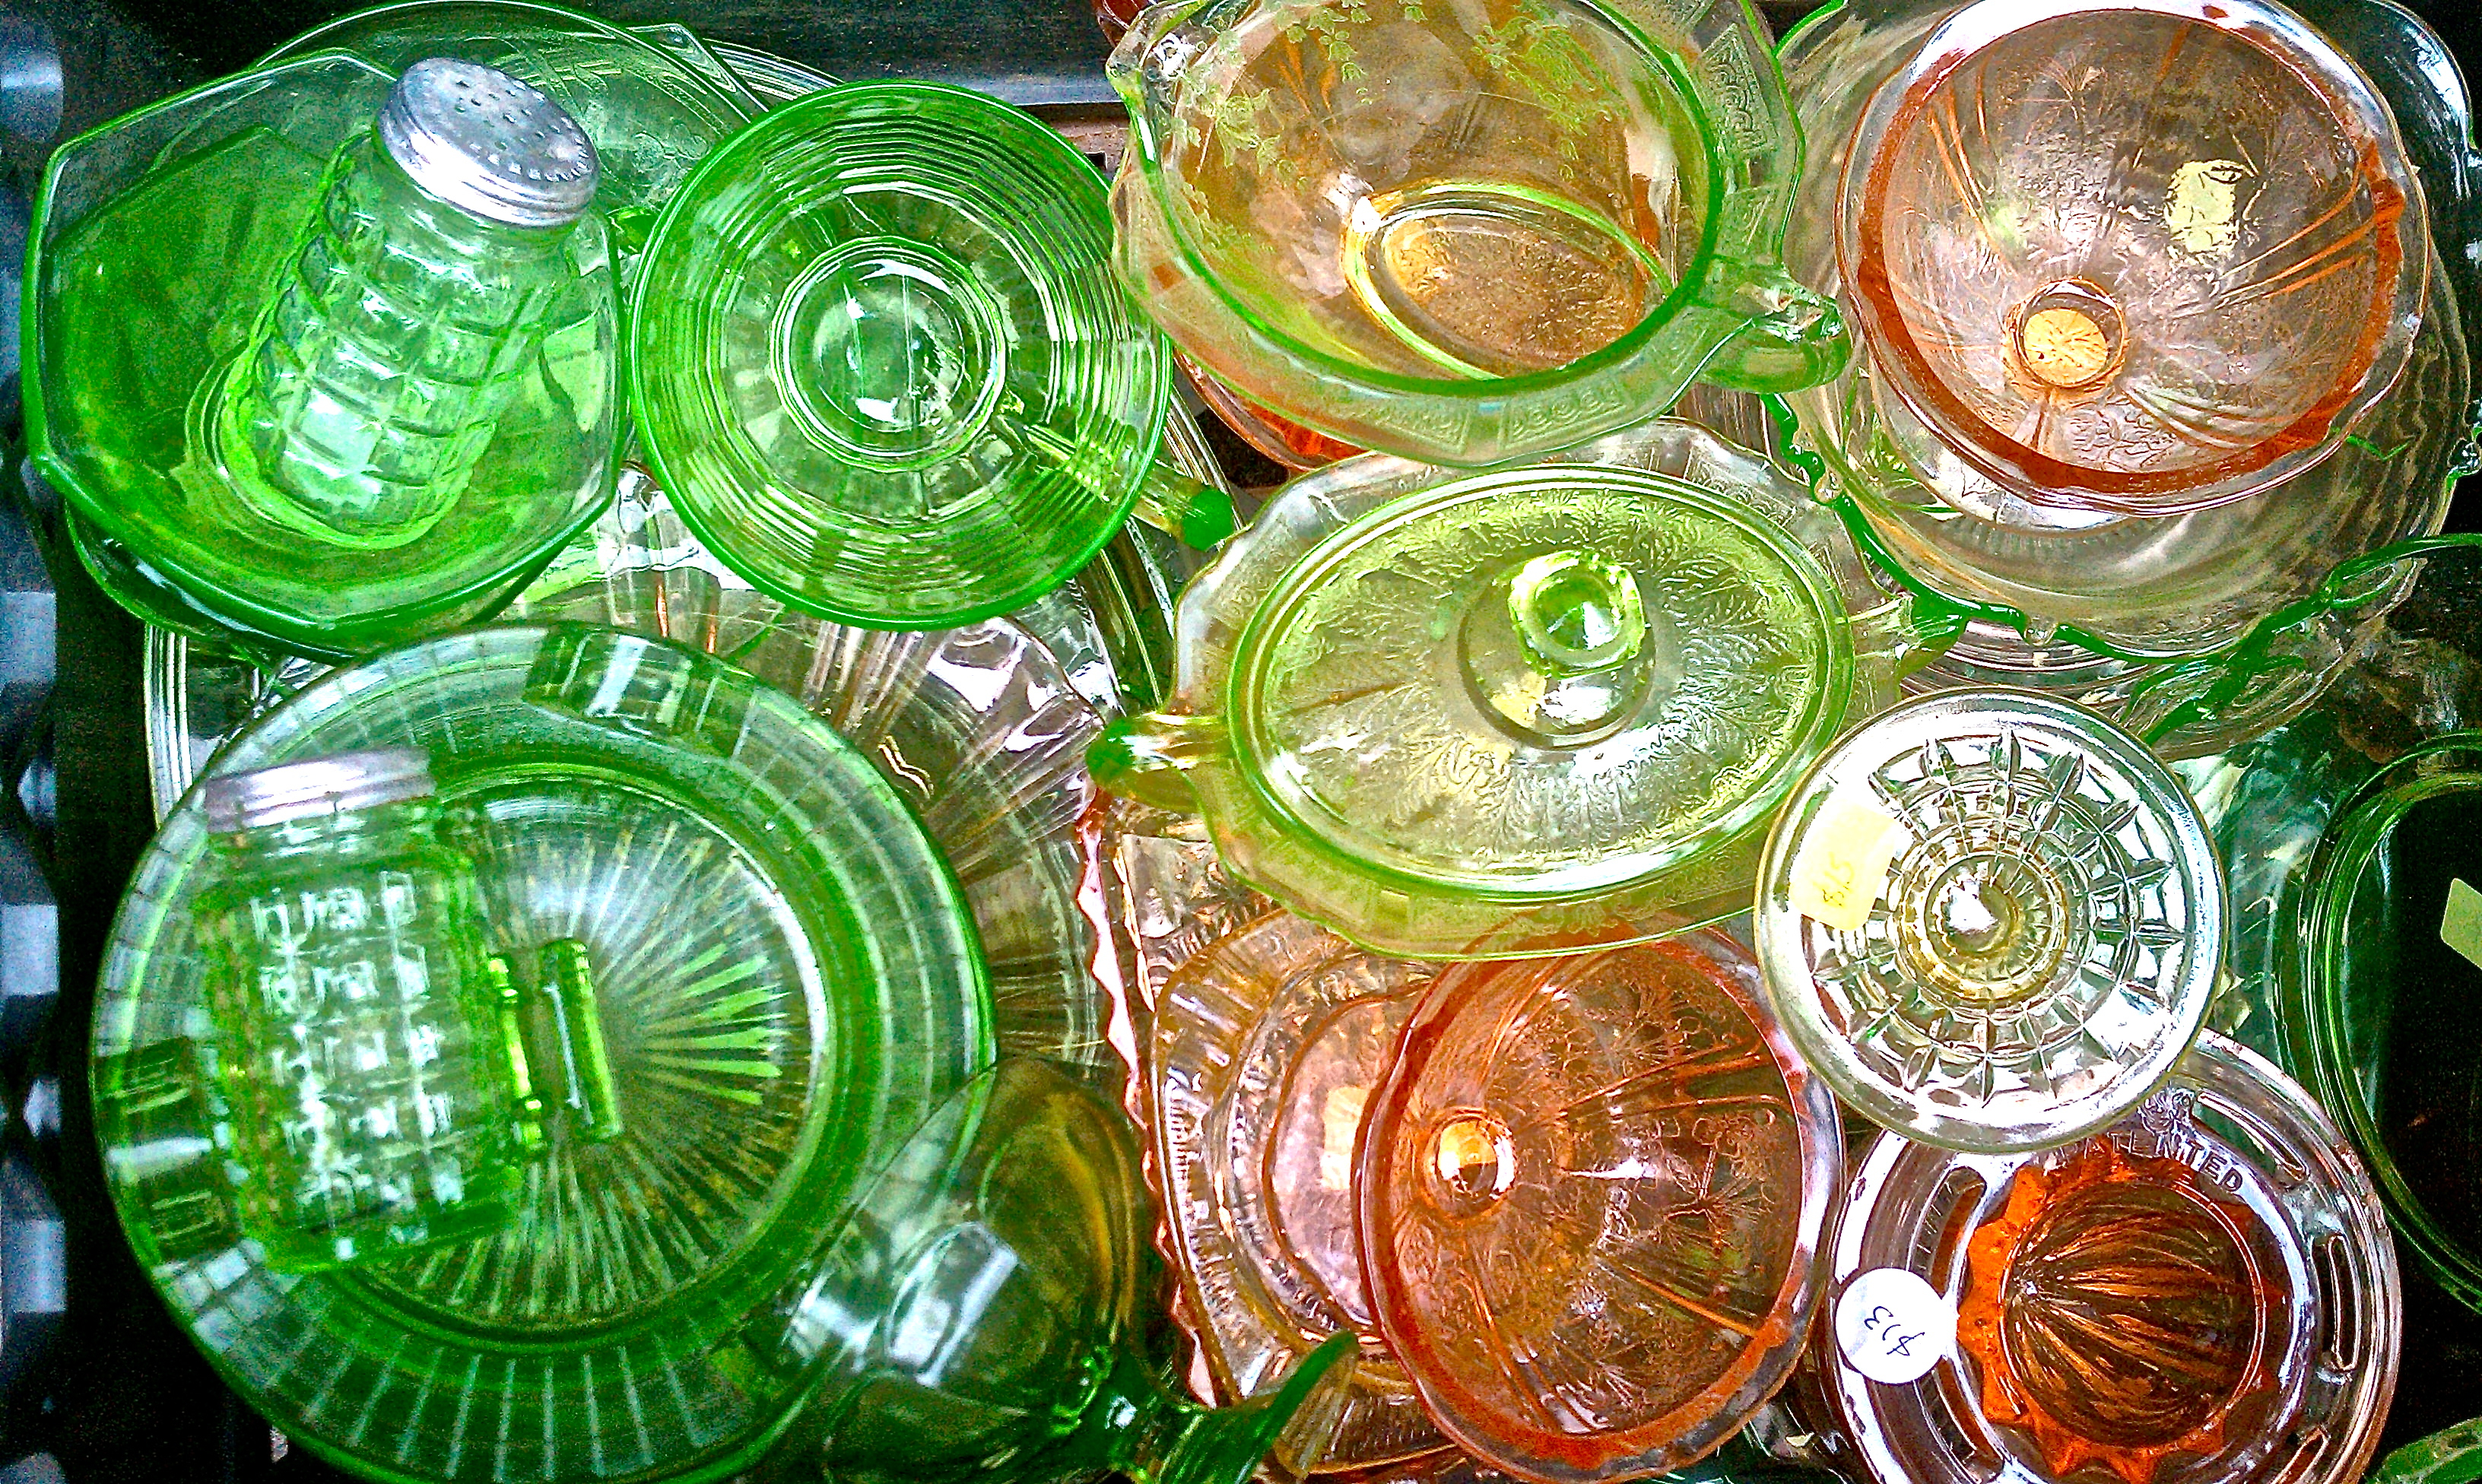 Amber Depression Glass Patterns Amazing Design Ideas